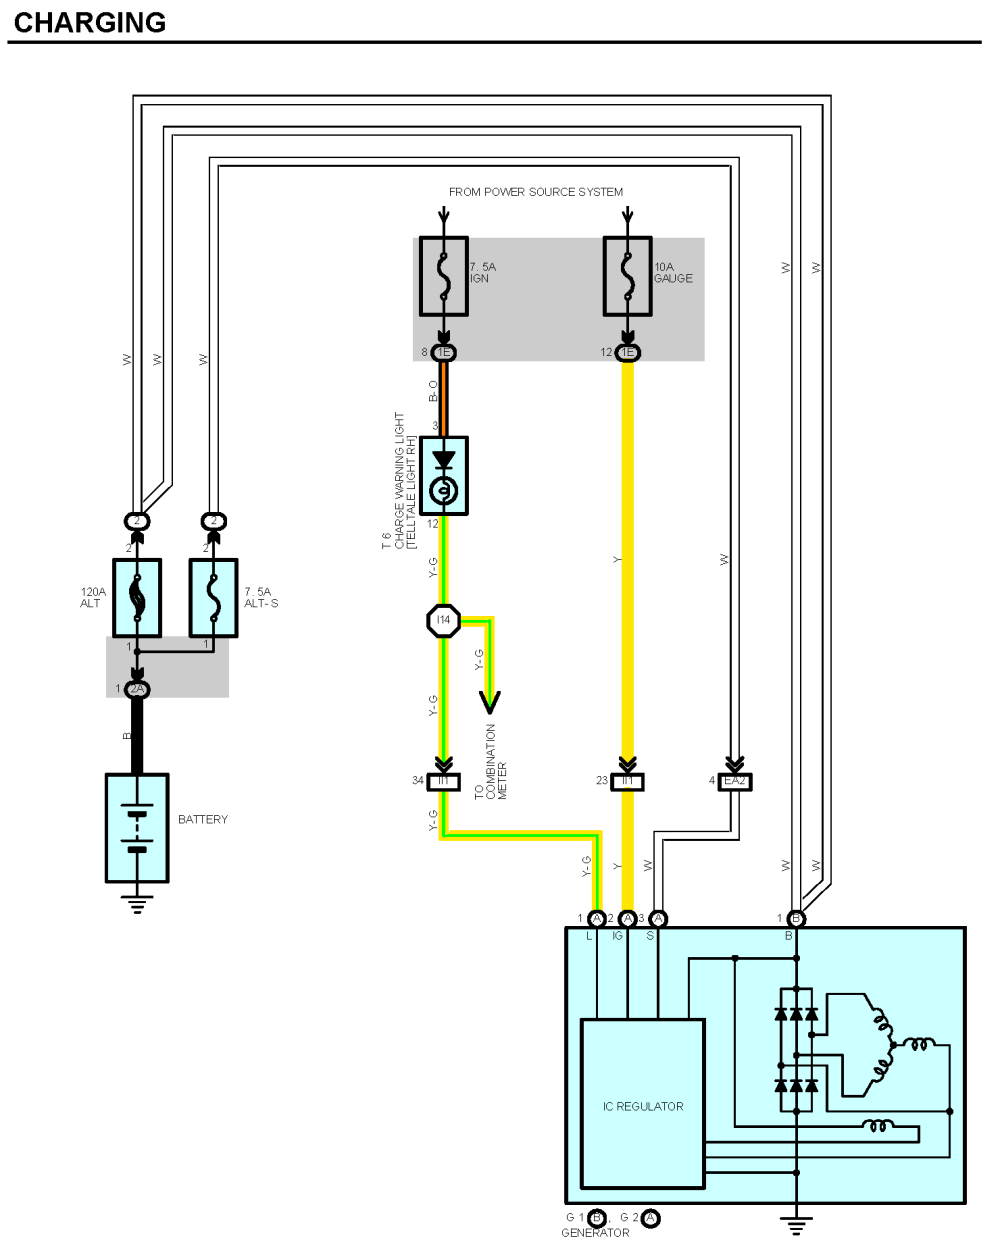 medium resolution of the below wiring diagram taken from the jza80 tsrm shows the general wiring arrangement for alternators with inbuilt regulators